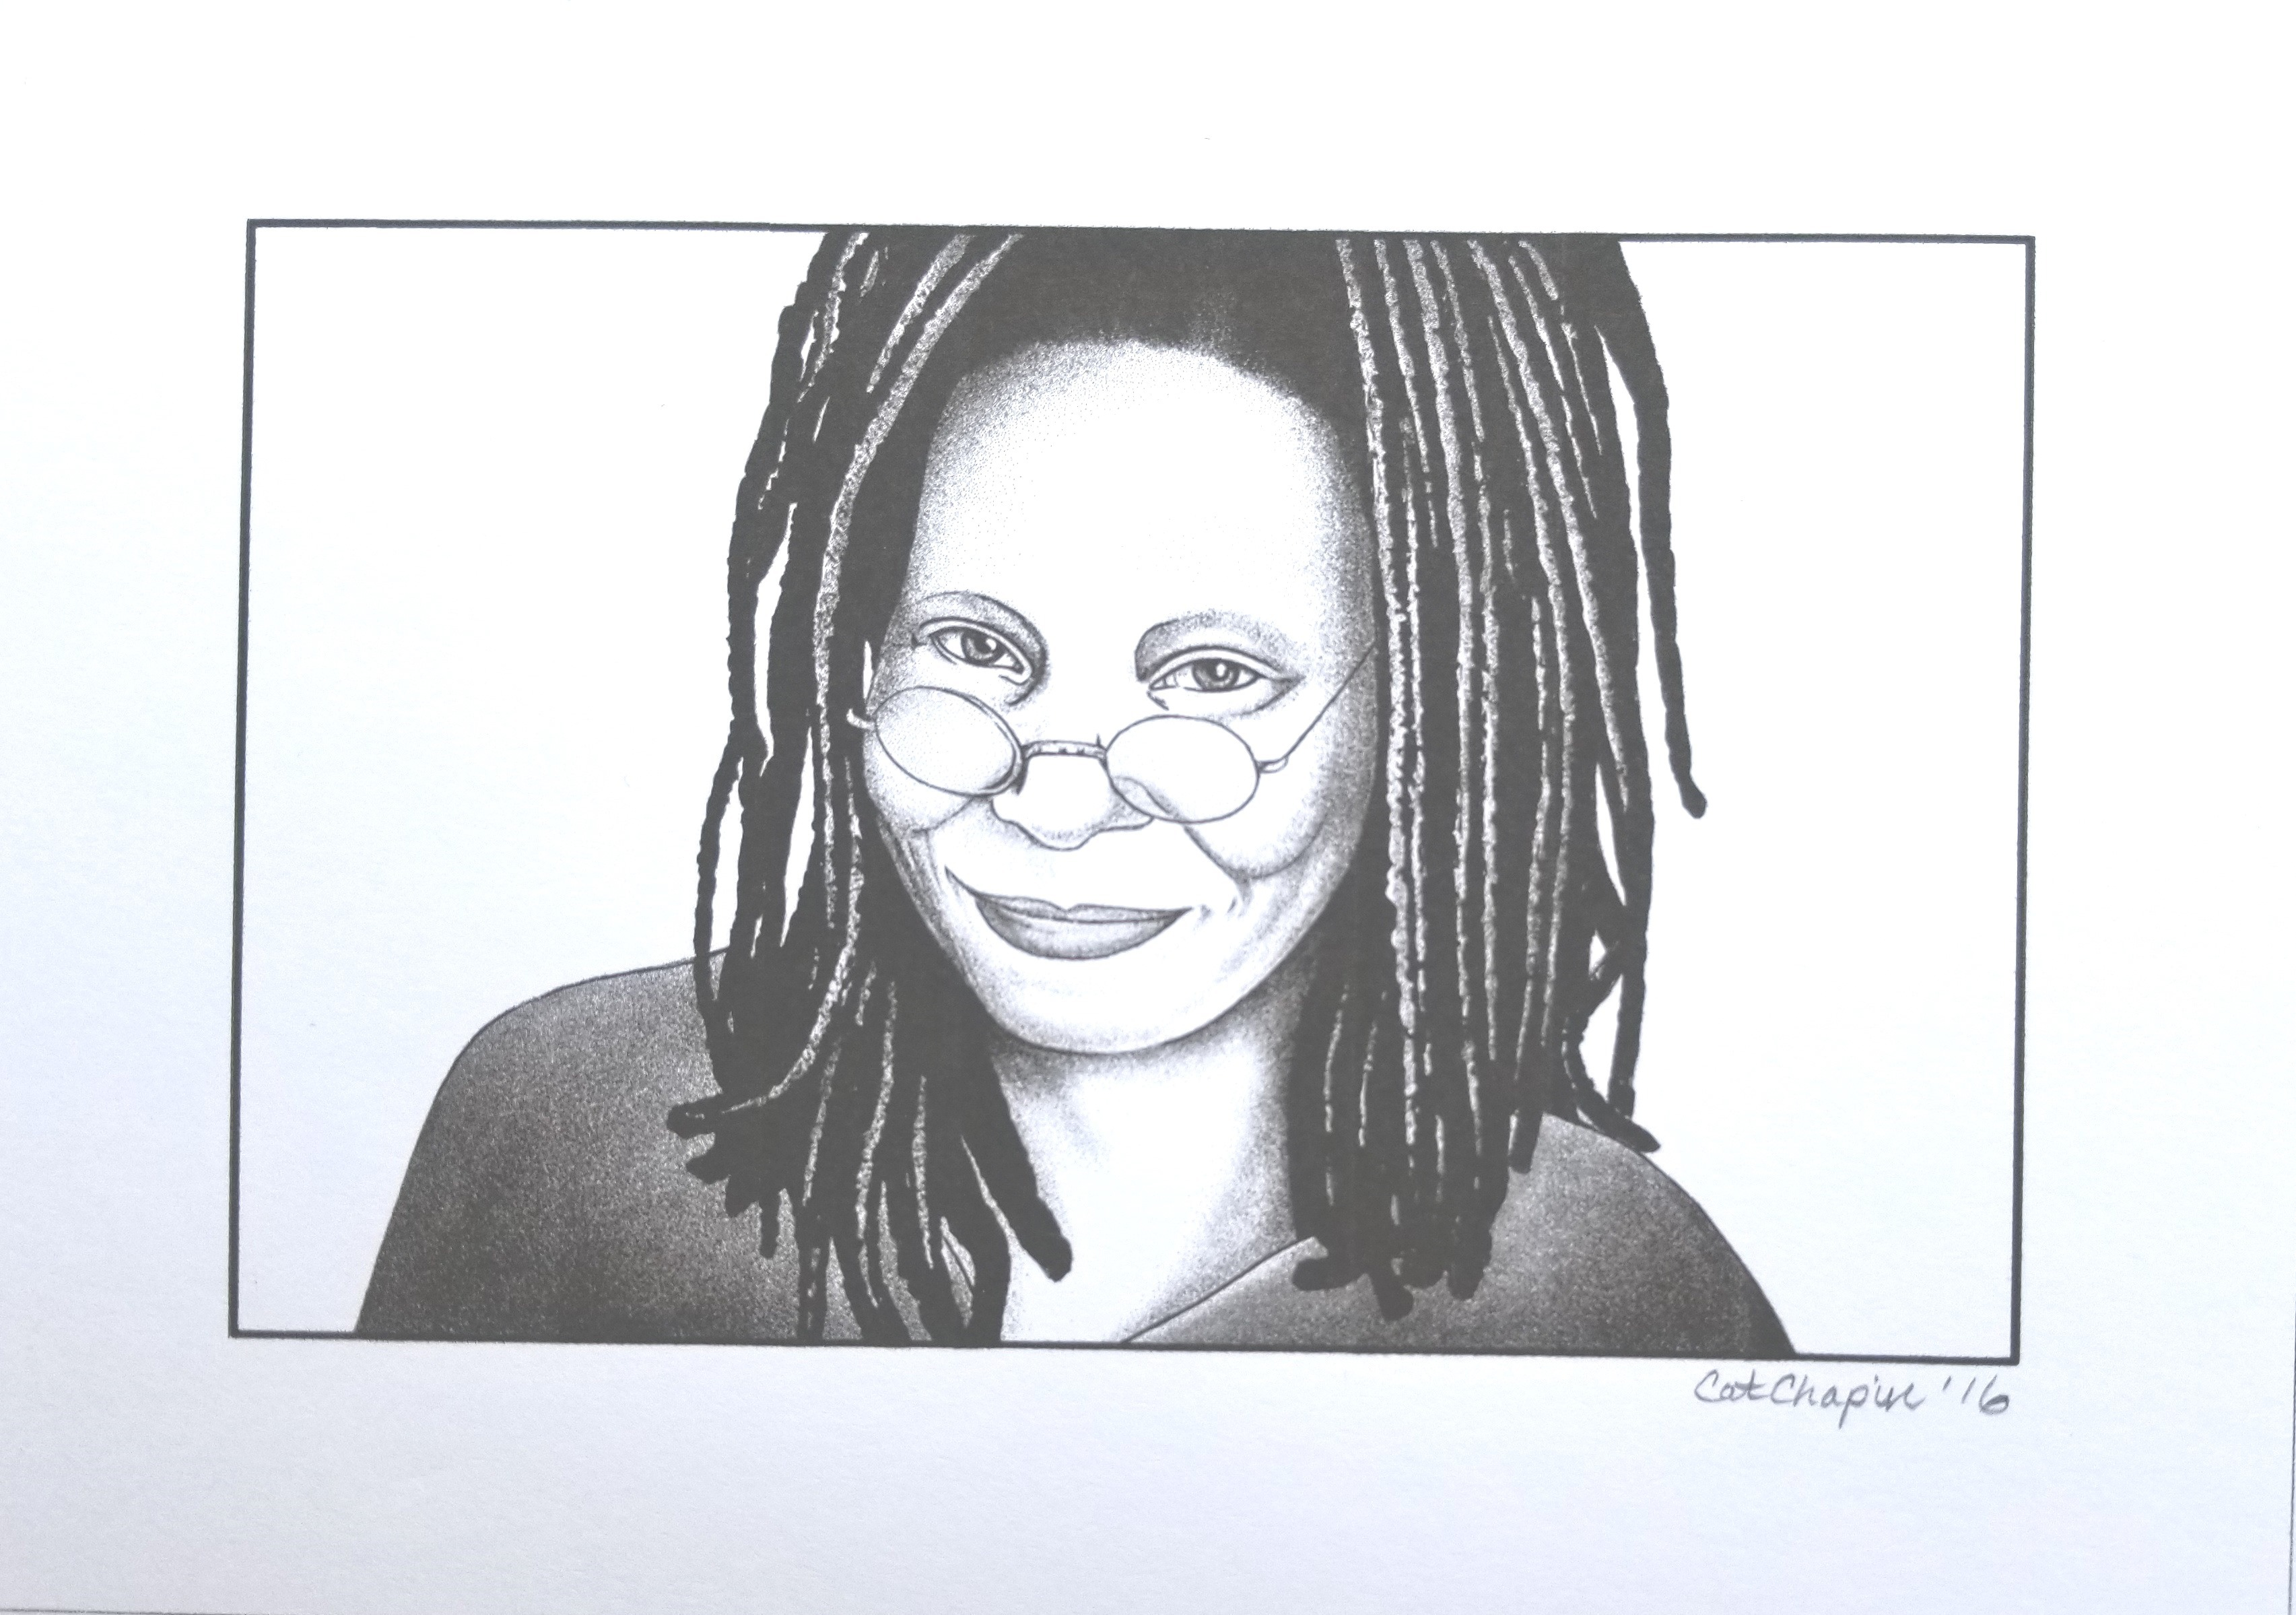 CERT PRINTED AUTOGRAPH LIMITED EDITION WHOOPI GOLDBERG SIGNED PHOTOGRAPH